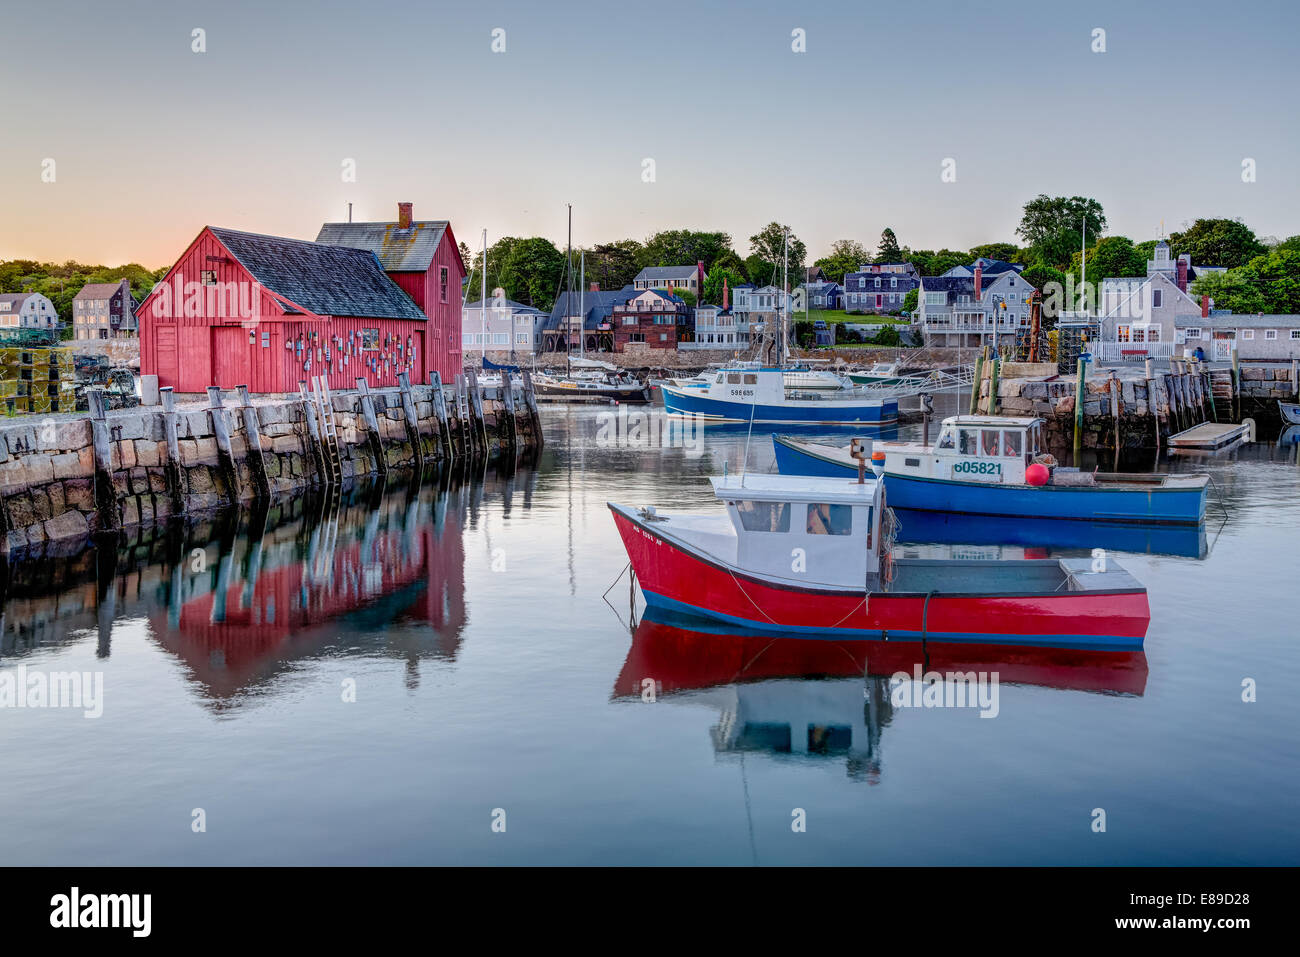 The quintessential New England Motif Number One sunrise. Located on Bradley Wharf in the harbor town of Rockport. - Stock Image